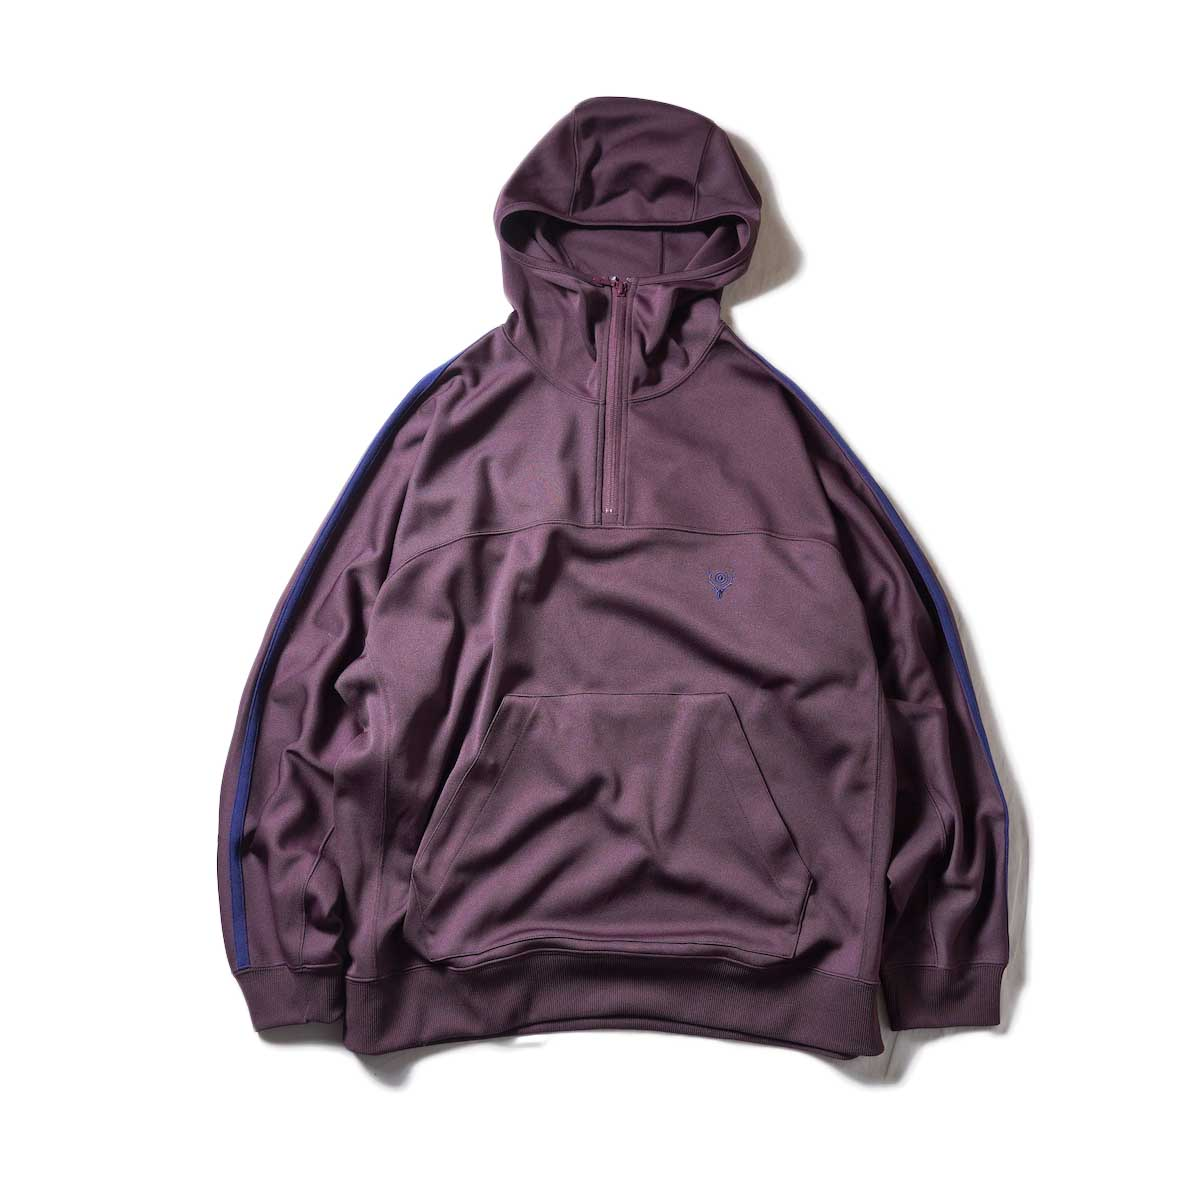 South2 West8 / Trainer Hoody - Poly Smooth (Burgundy)zip締めたver